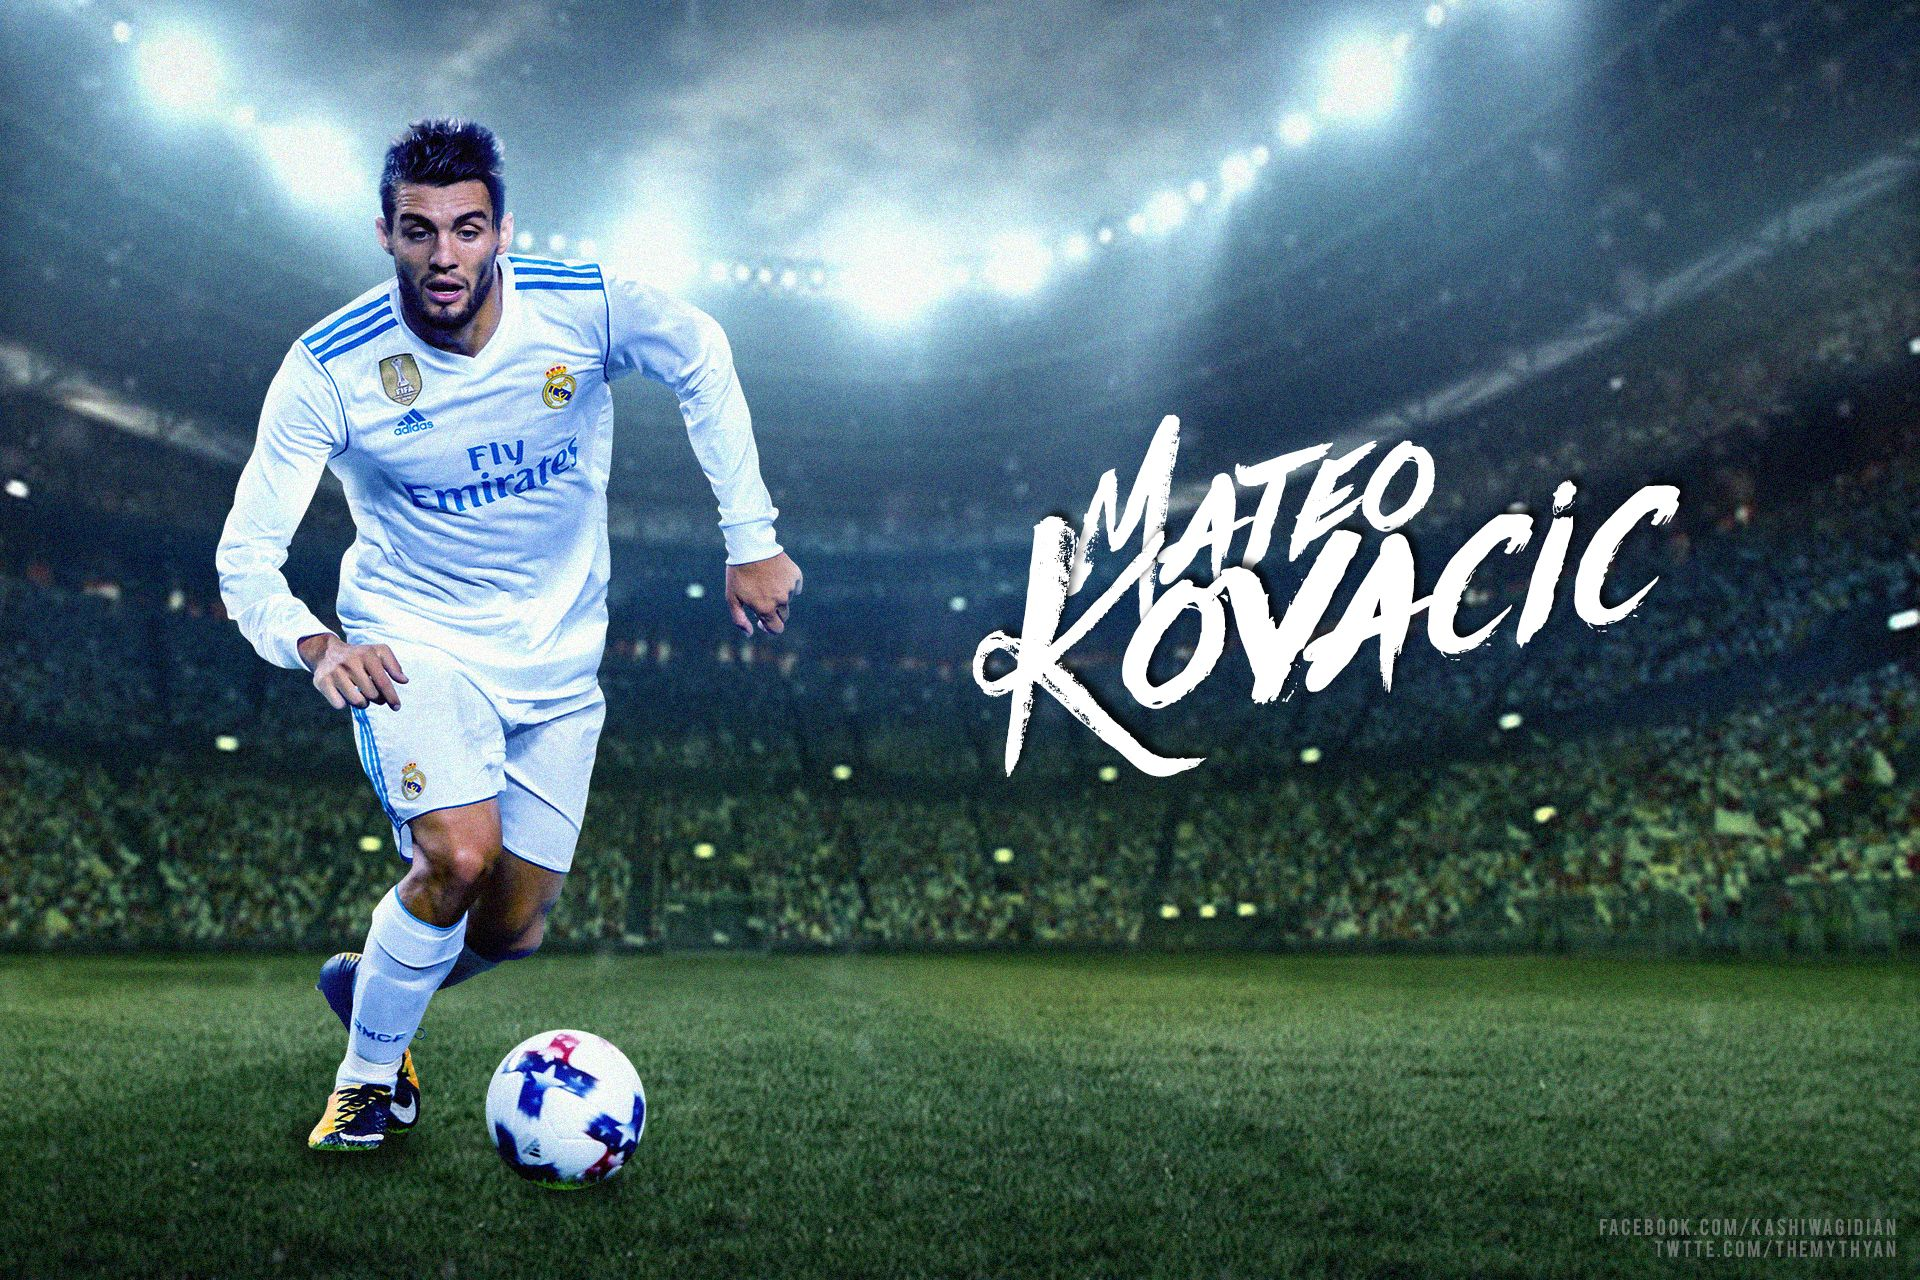 Mateo Kovacic Real Madrid Wallpaper 2017/18 by dianjay on DeviantArt